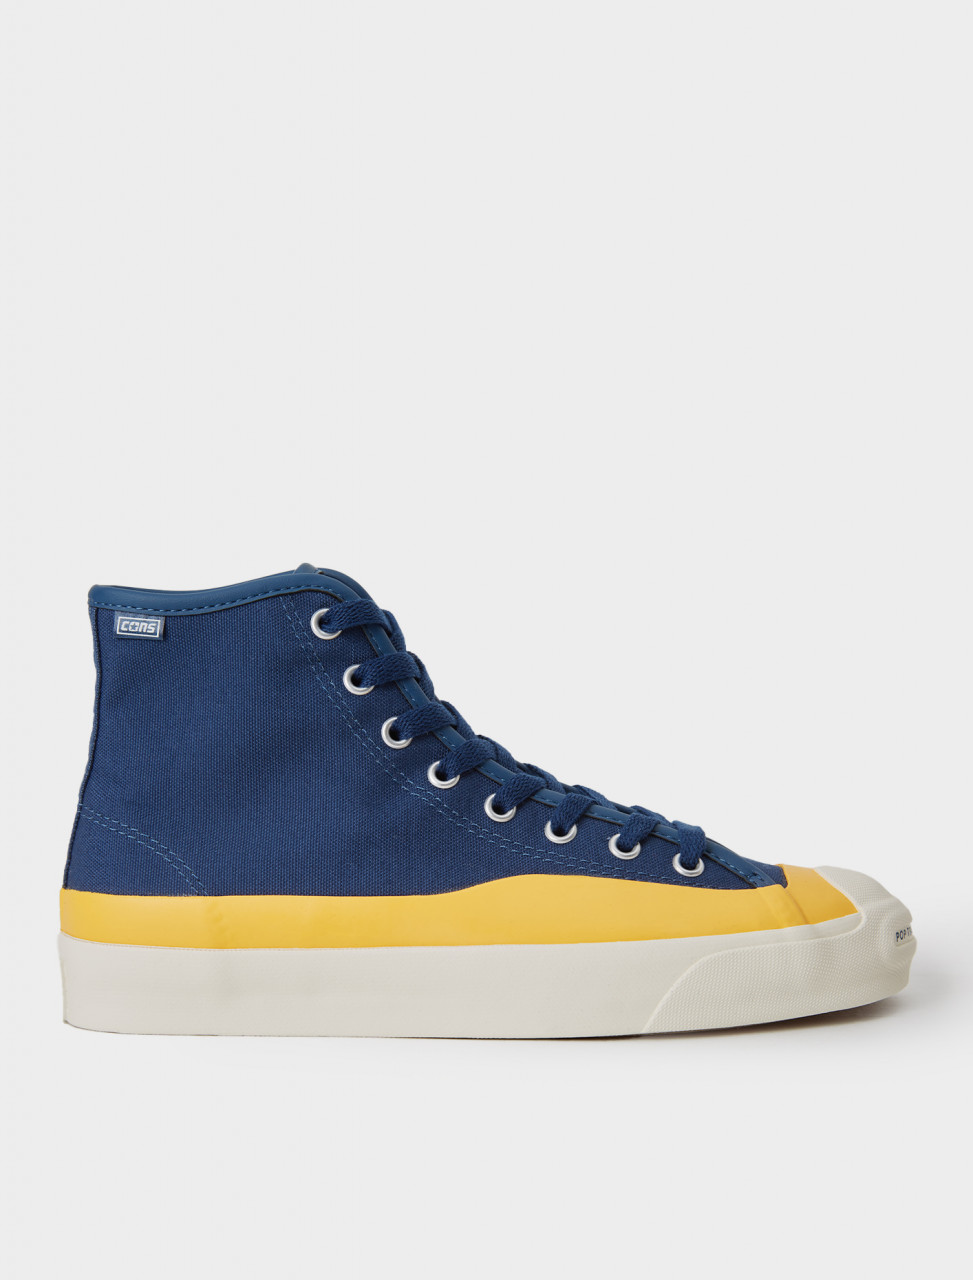 x Pop Trading Company Jack Purcell High Sneaker